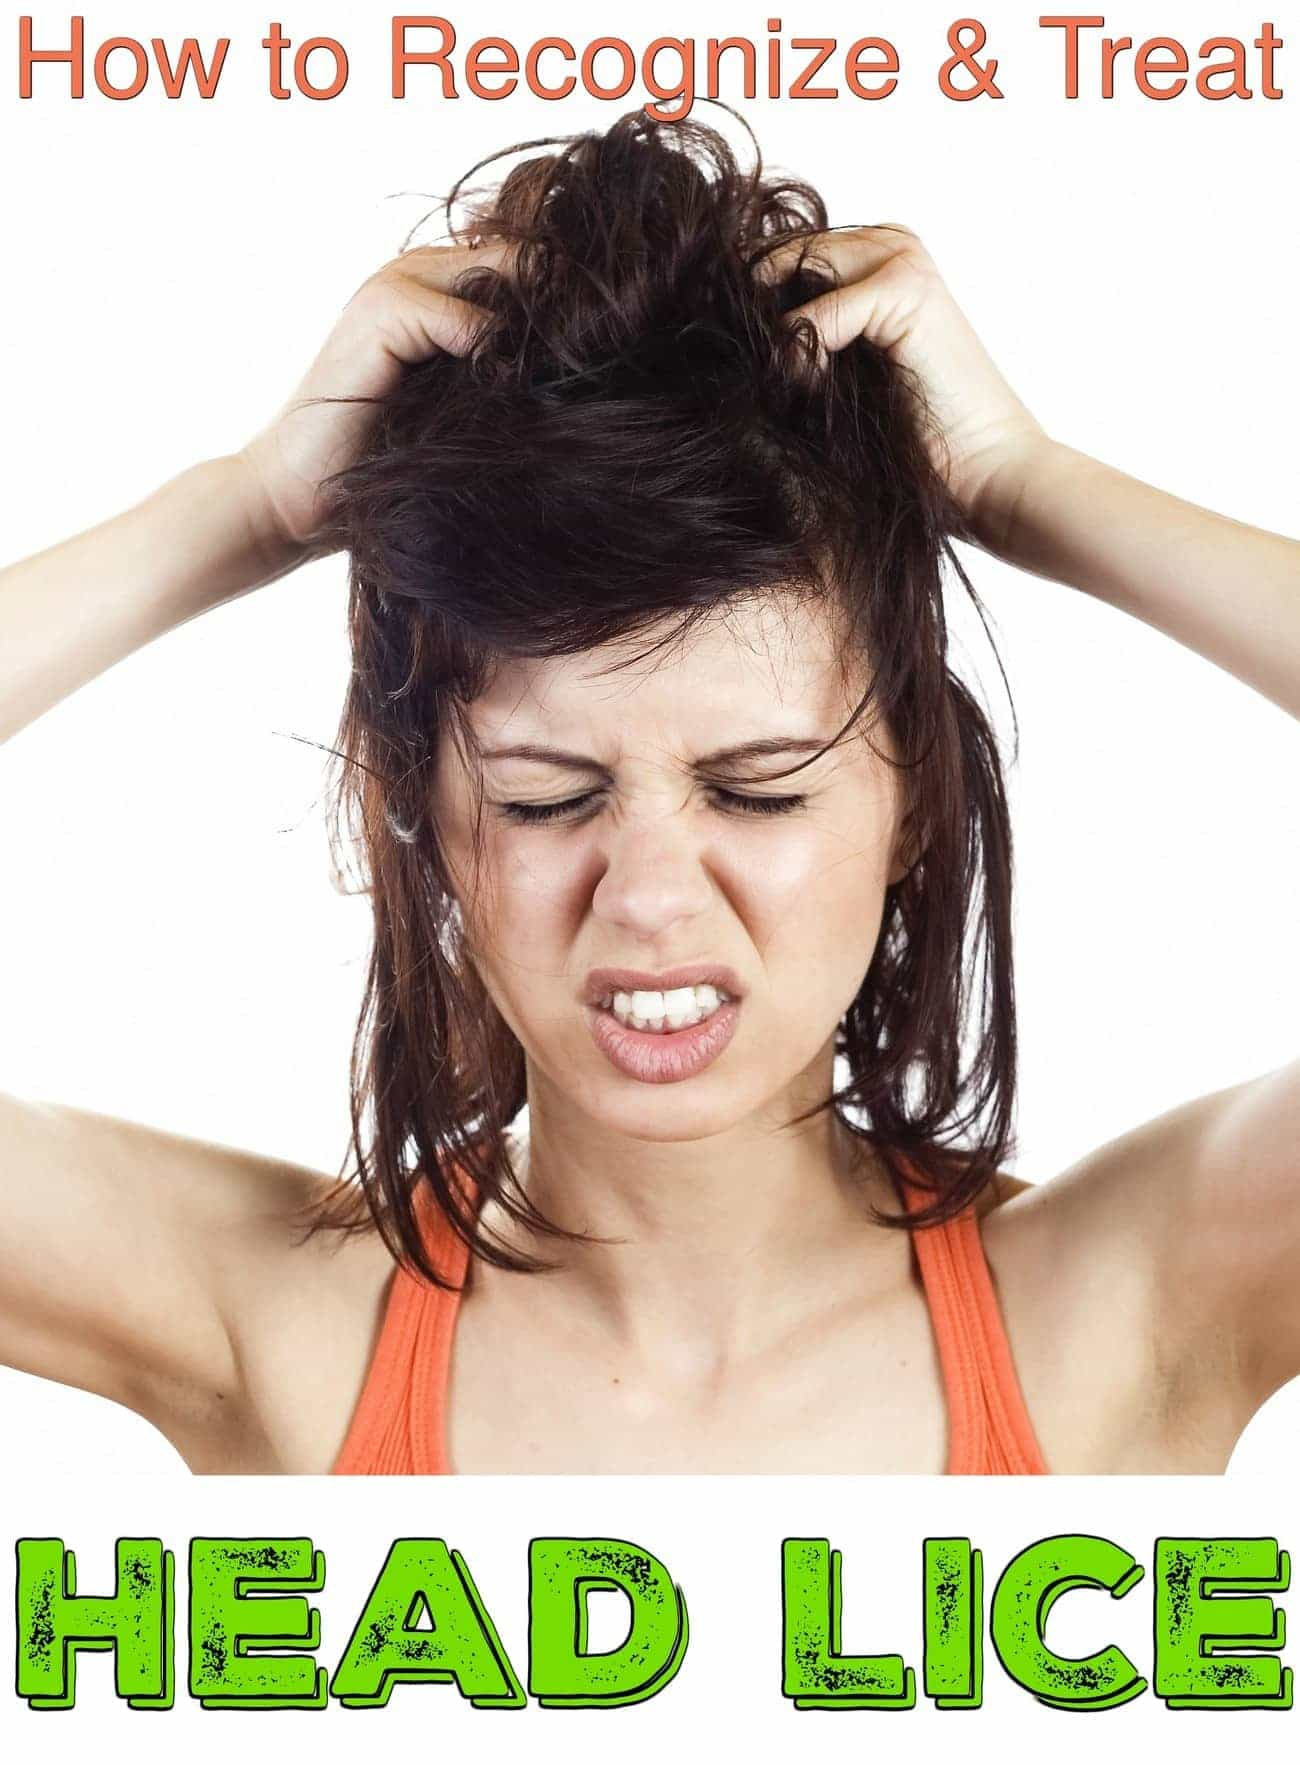 Head lice treatment has come on leaps and bounds in the last few years, Find the best methods to prevent and treat common Head Lice.